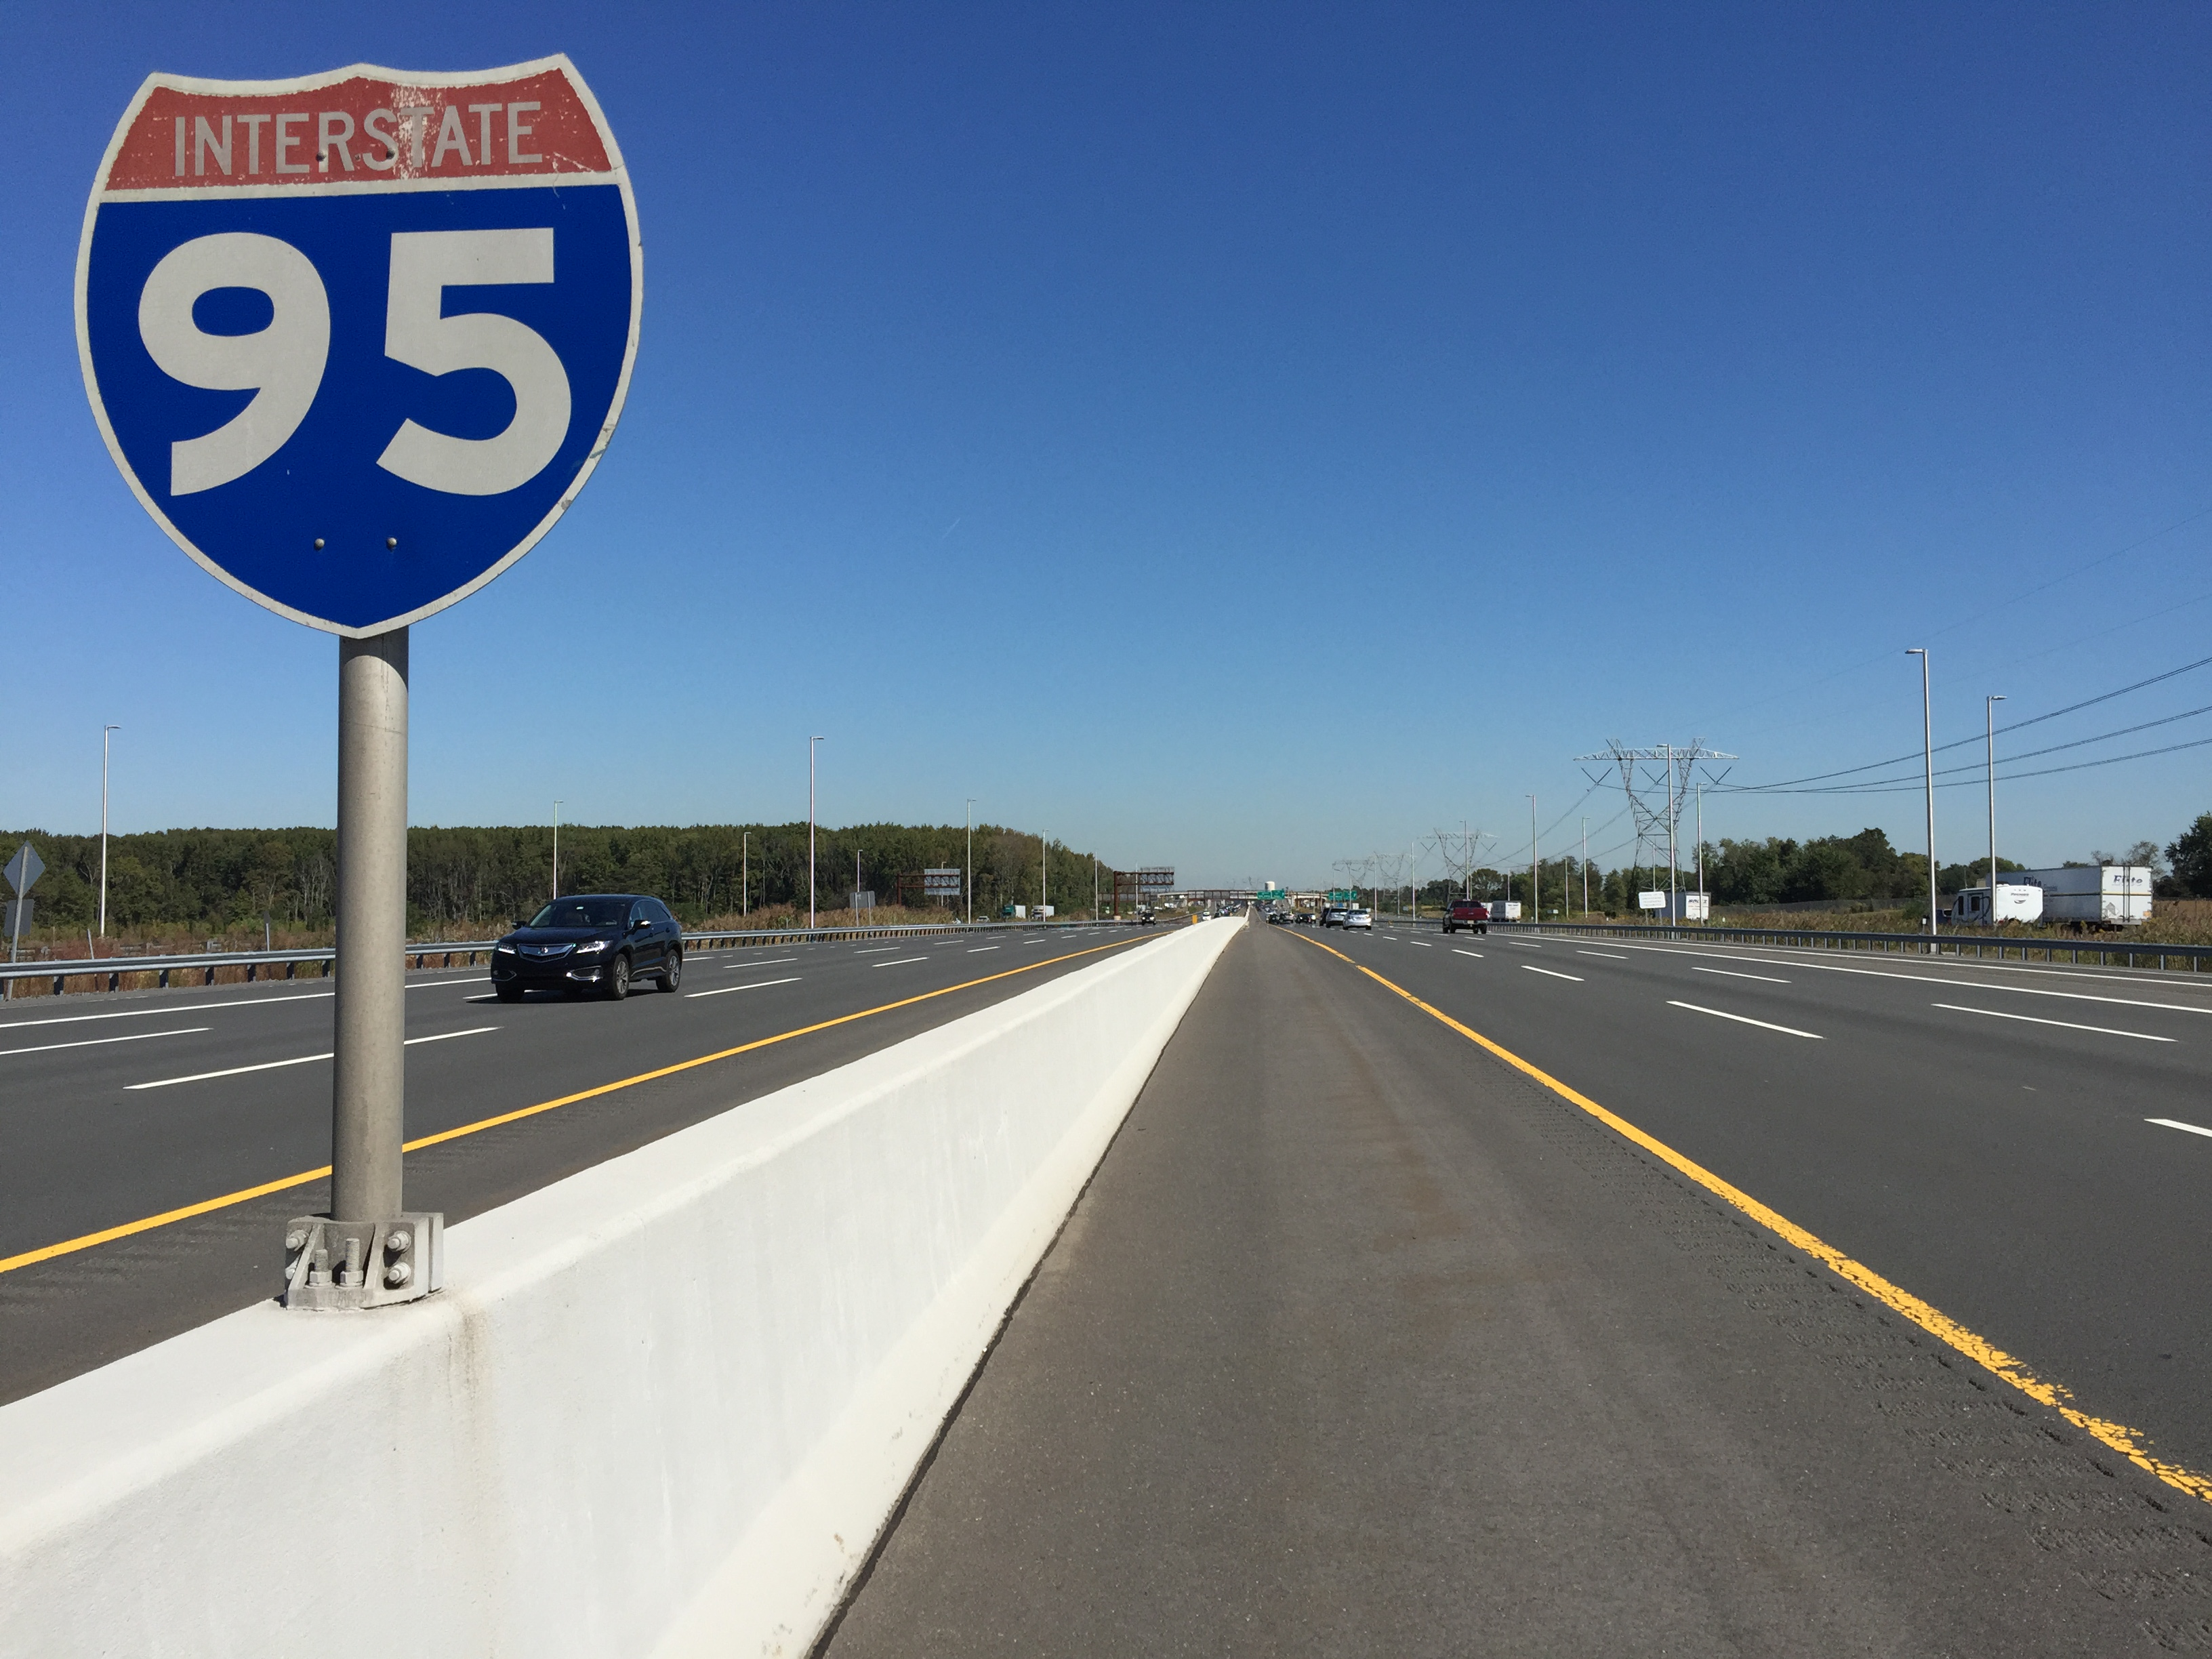 File:2017-10-02 12 57 46 View north along Interstate 95 ...